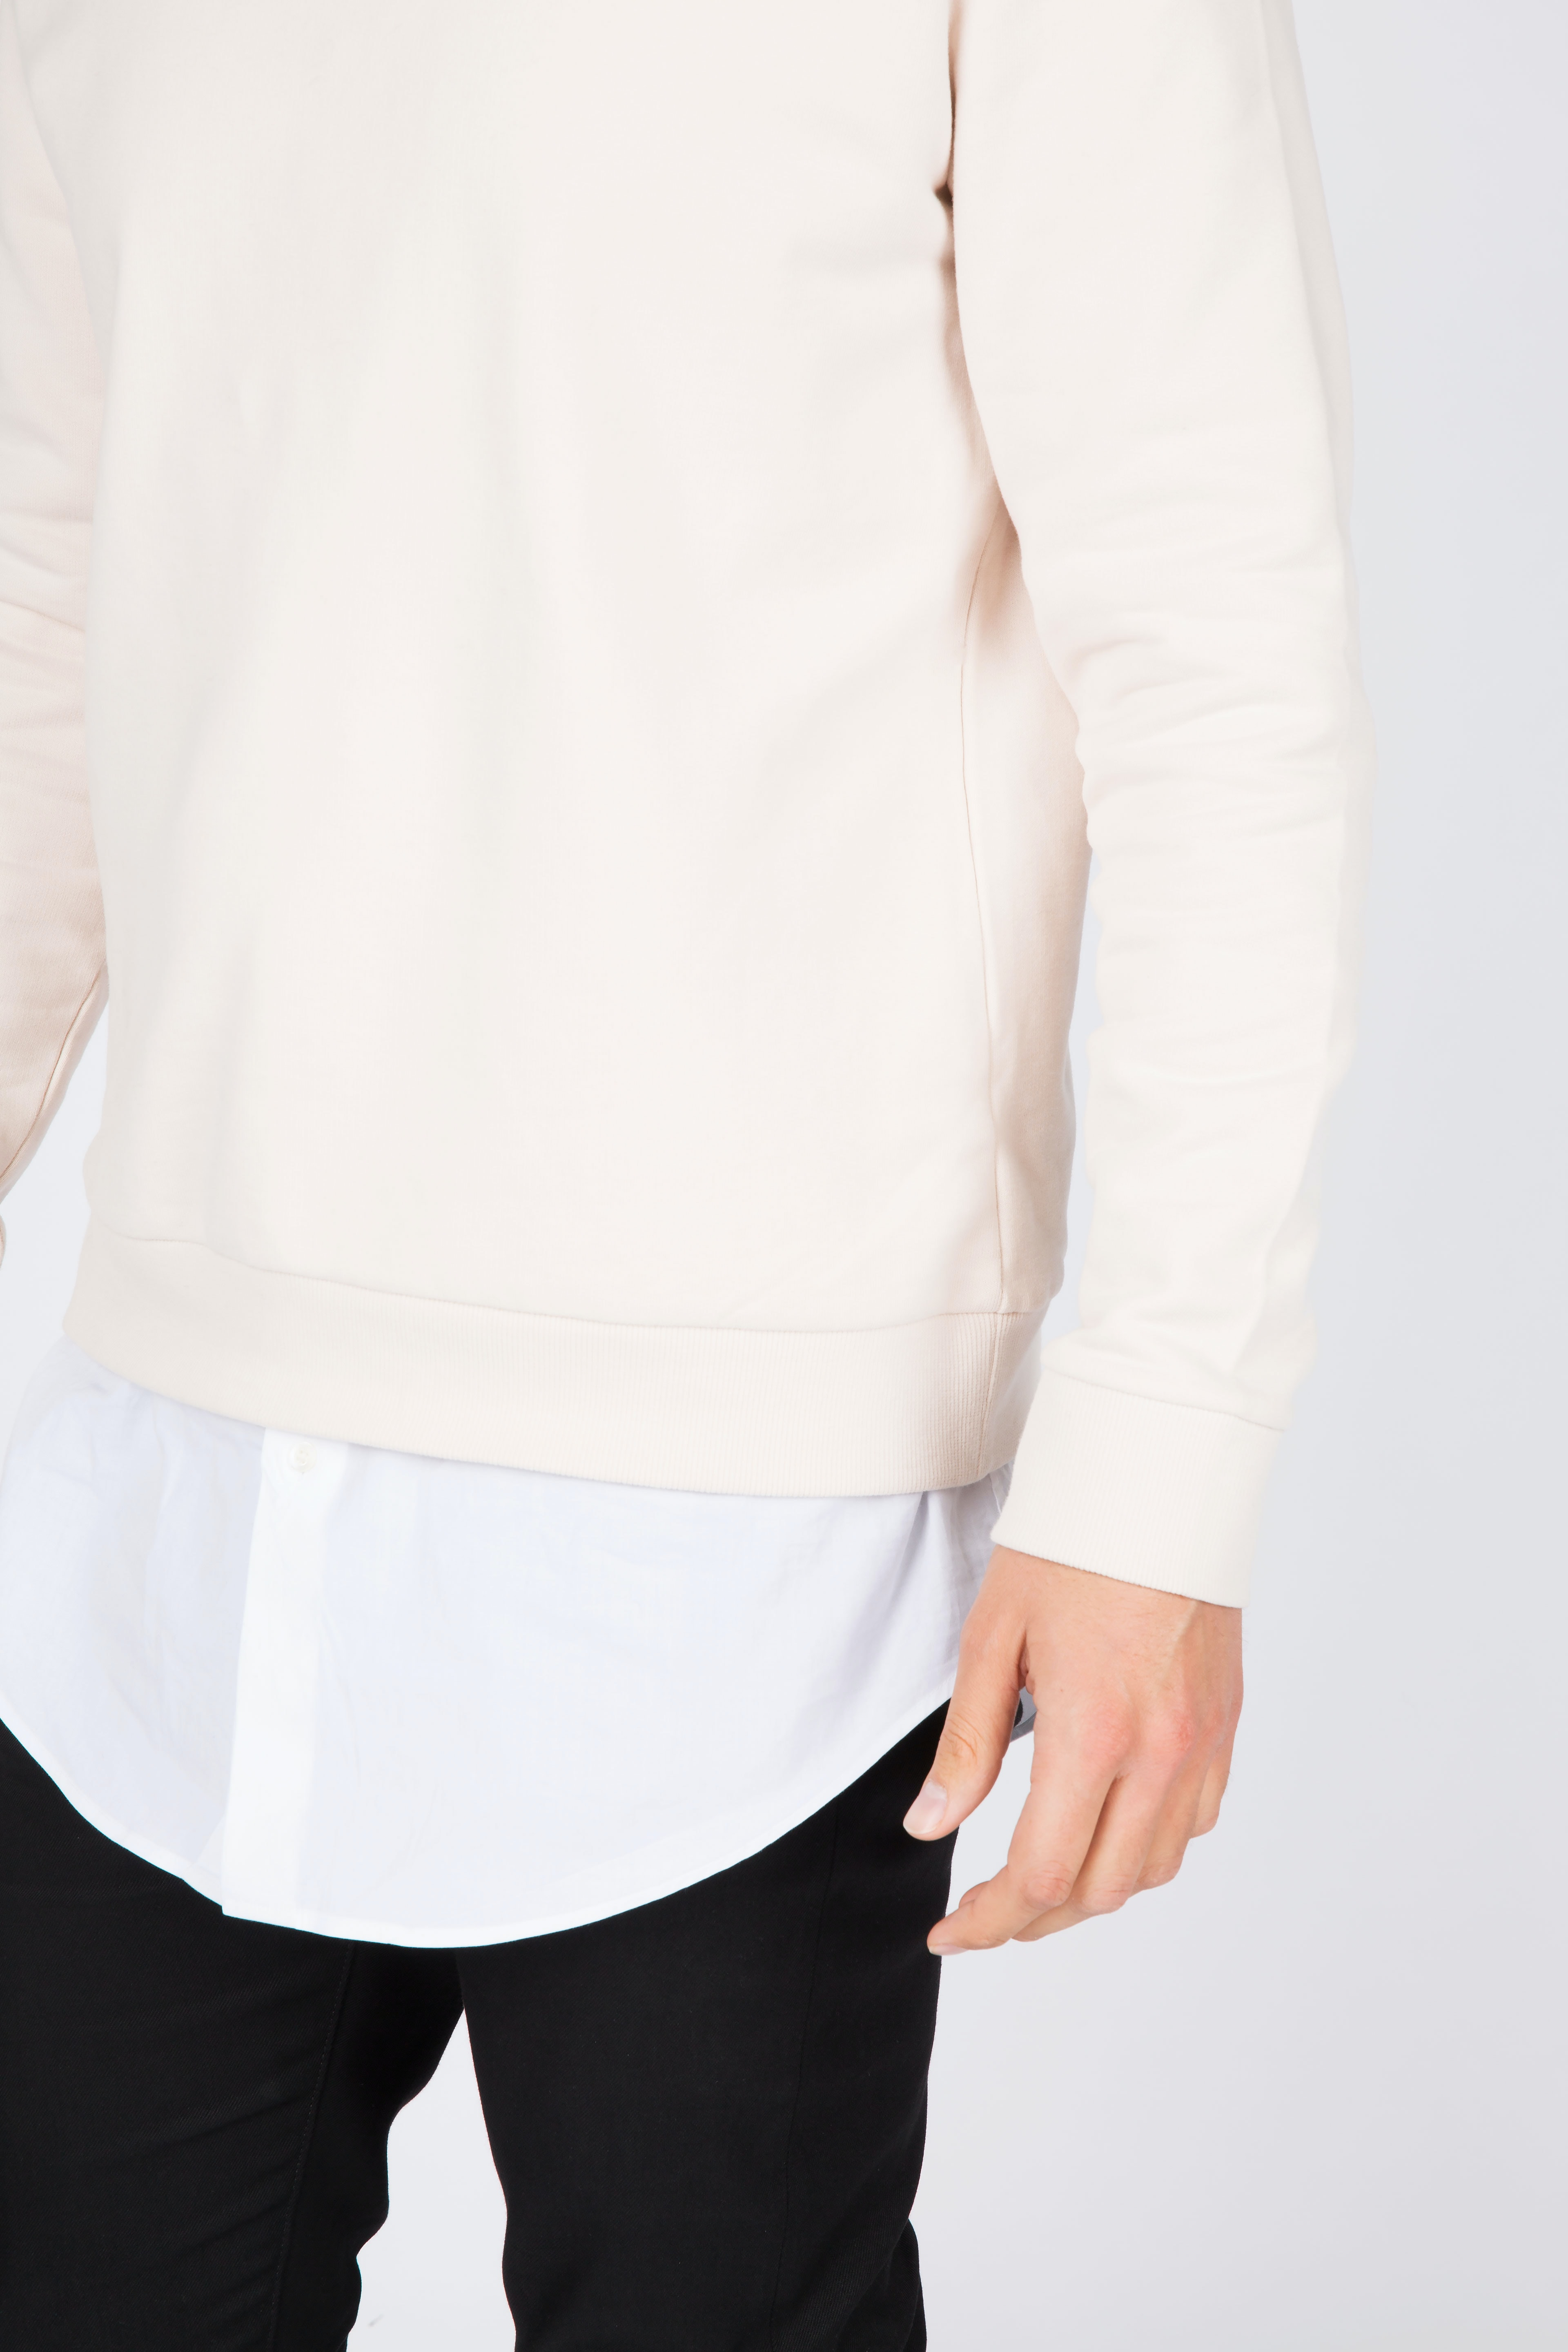 man in white long-sleeved shirt